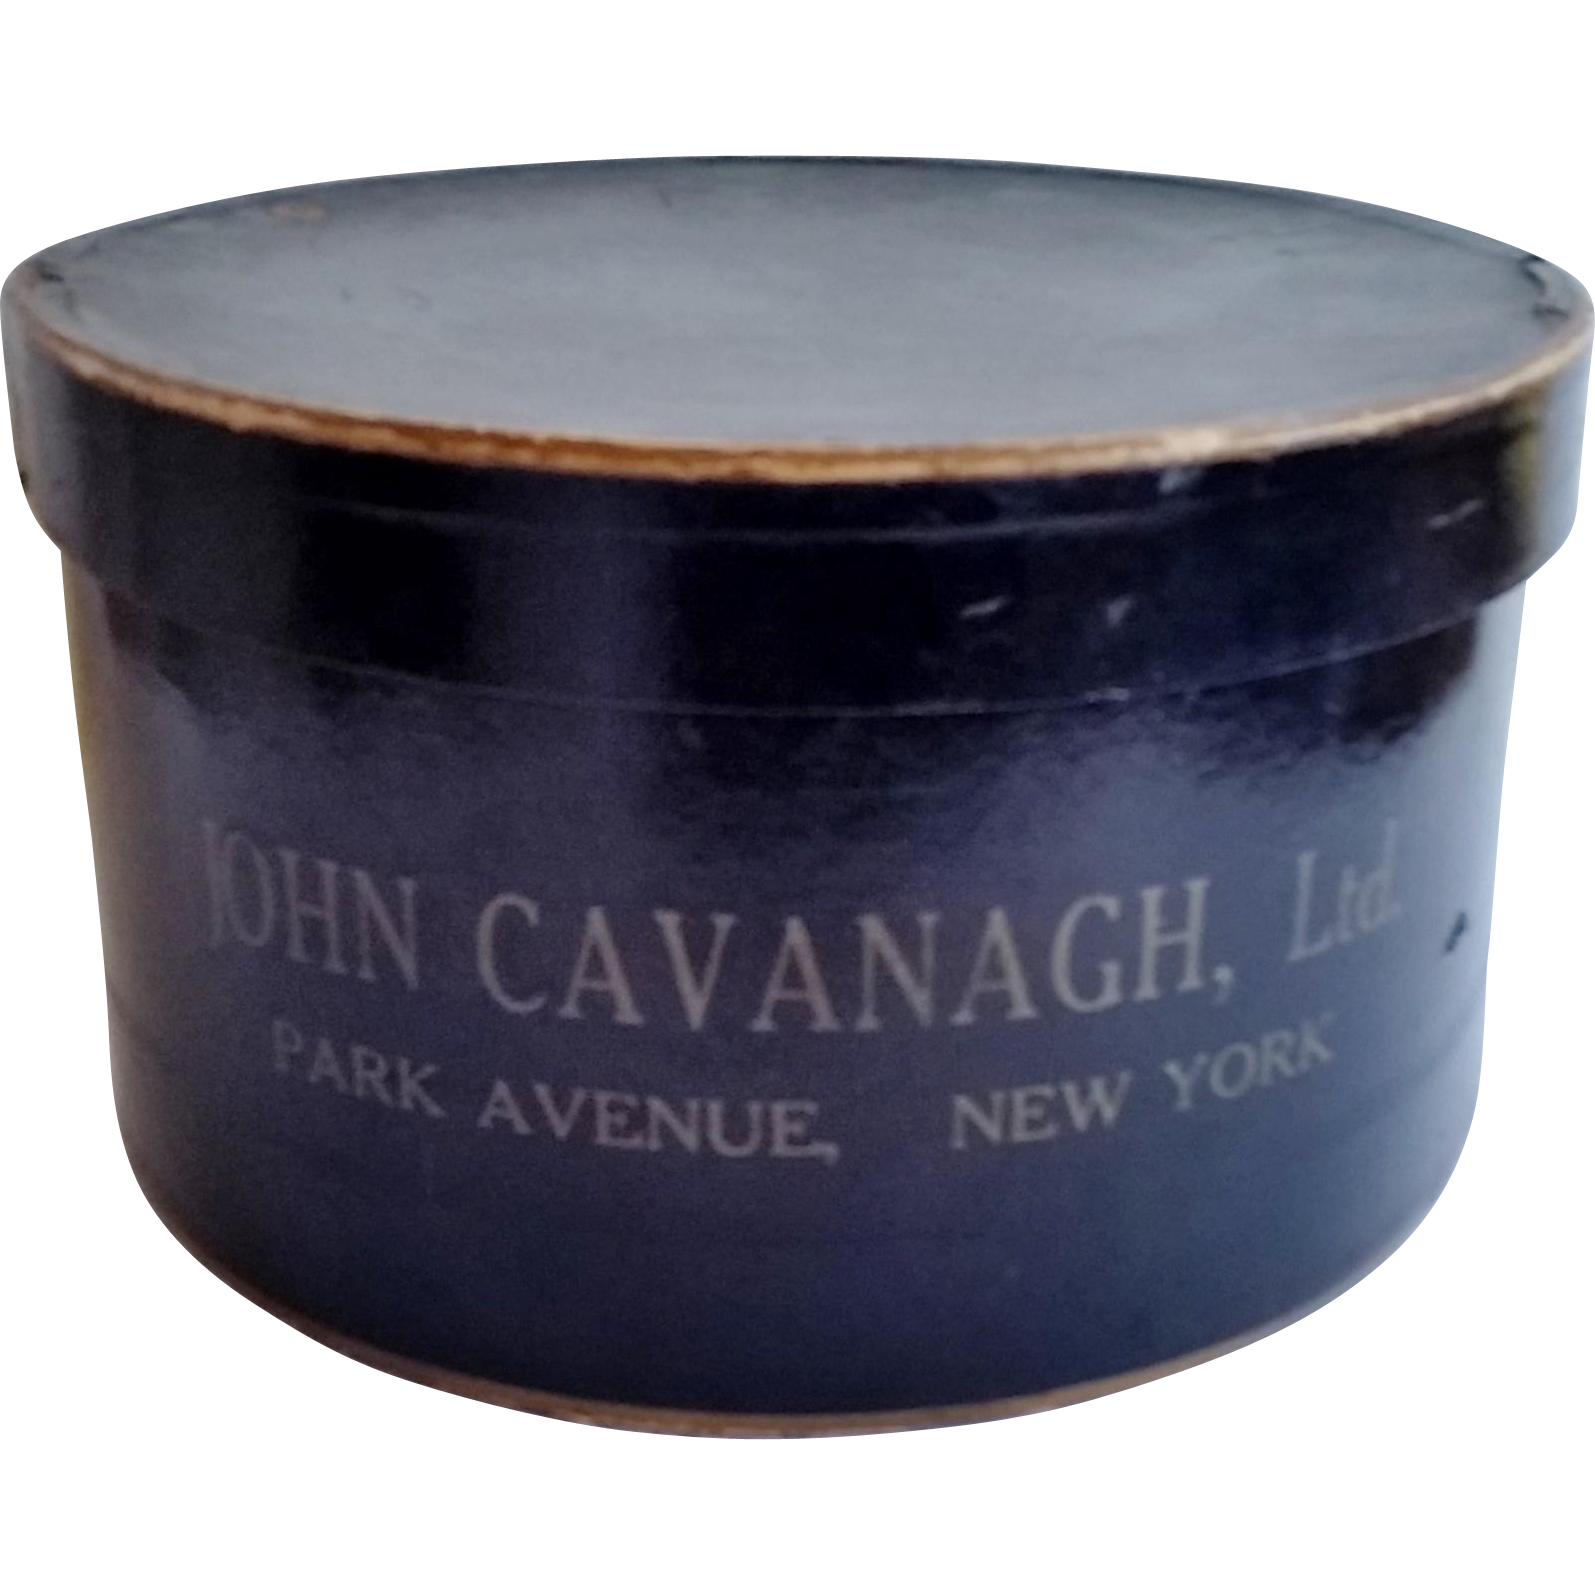 Vintage Hat Box John Cavanagh Ltd. Park Avenue, New York early 1900's